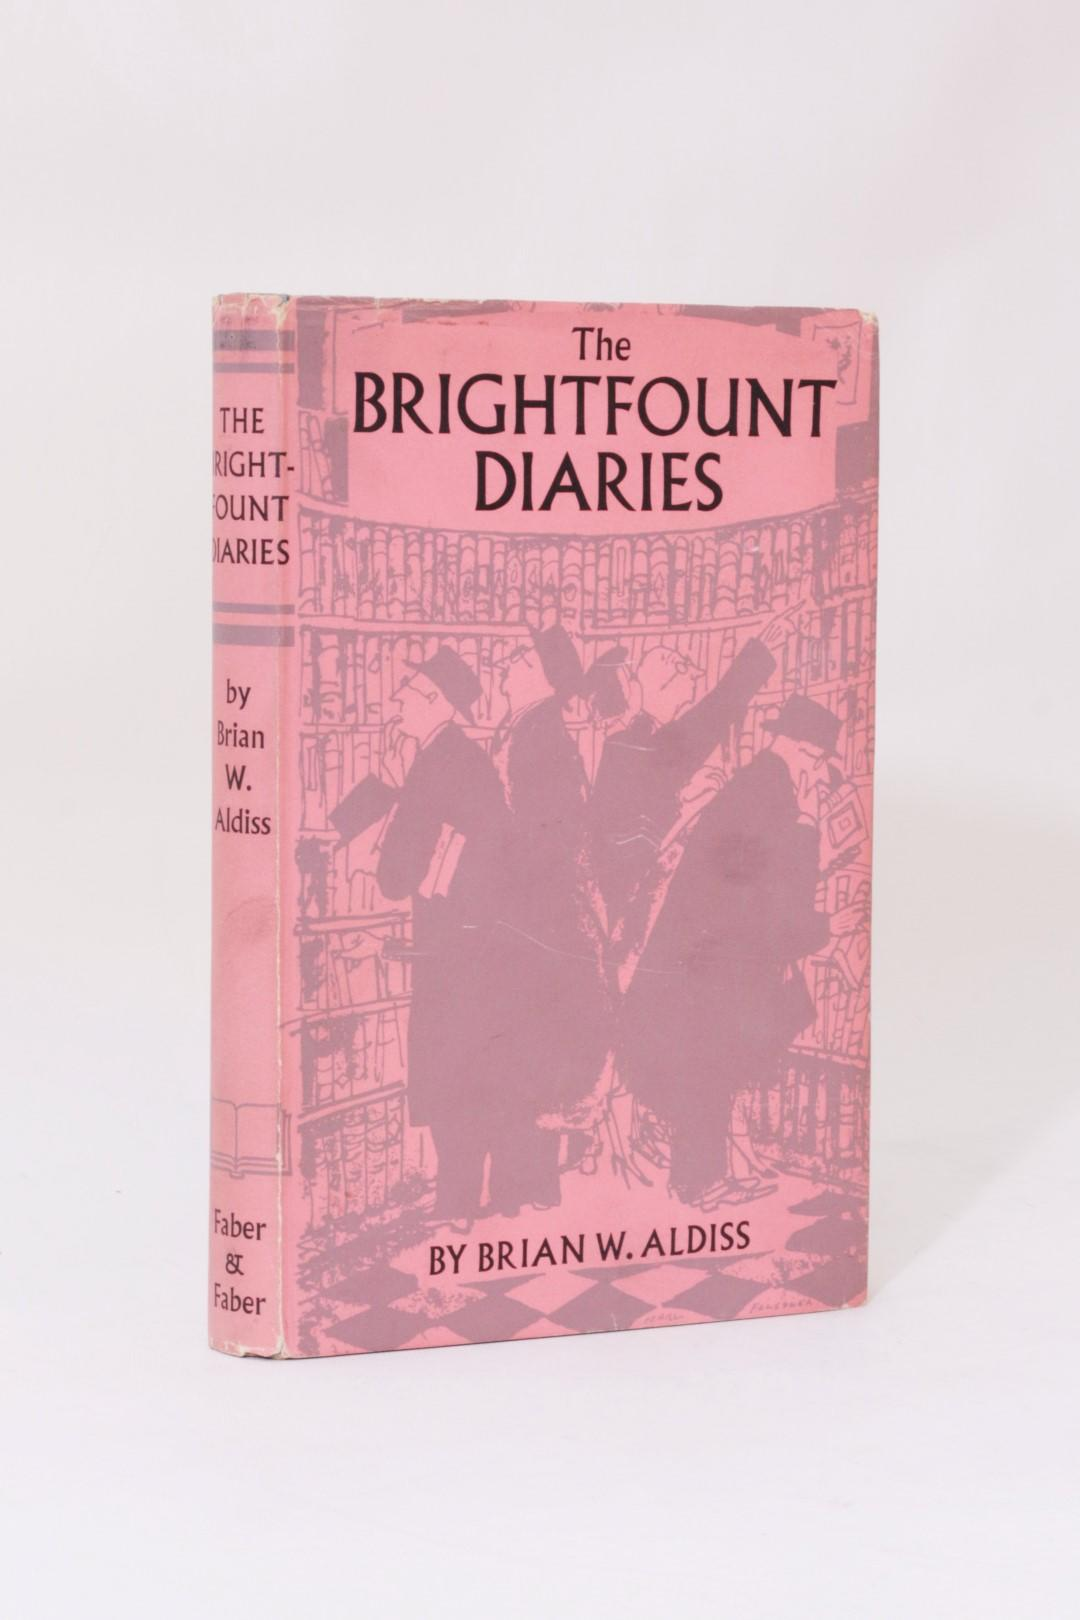 Brian W. Aldiss - The Brightfount Diaries - Faber, 1955, First Edition.